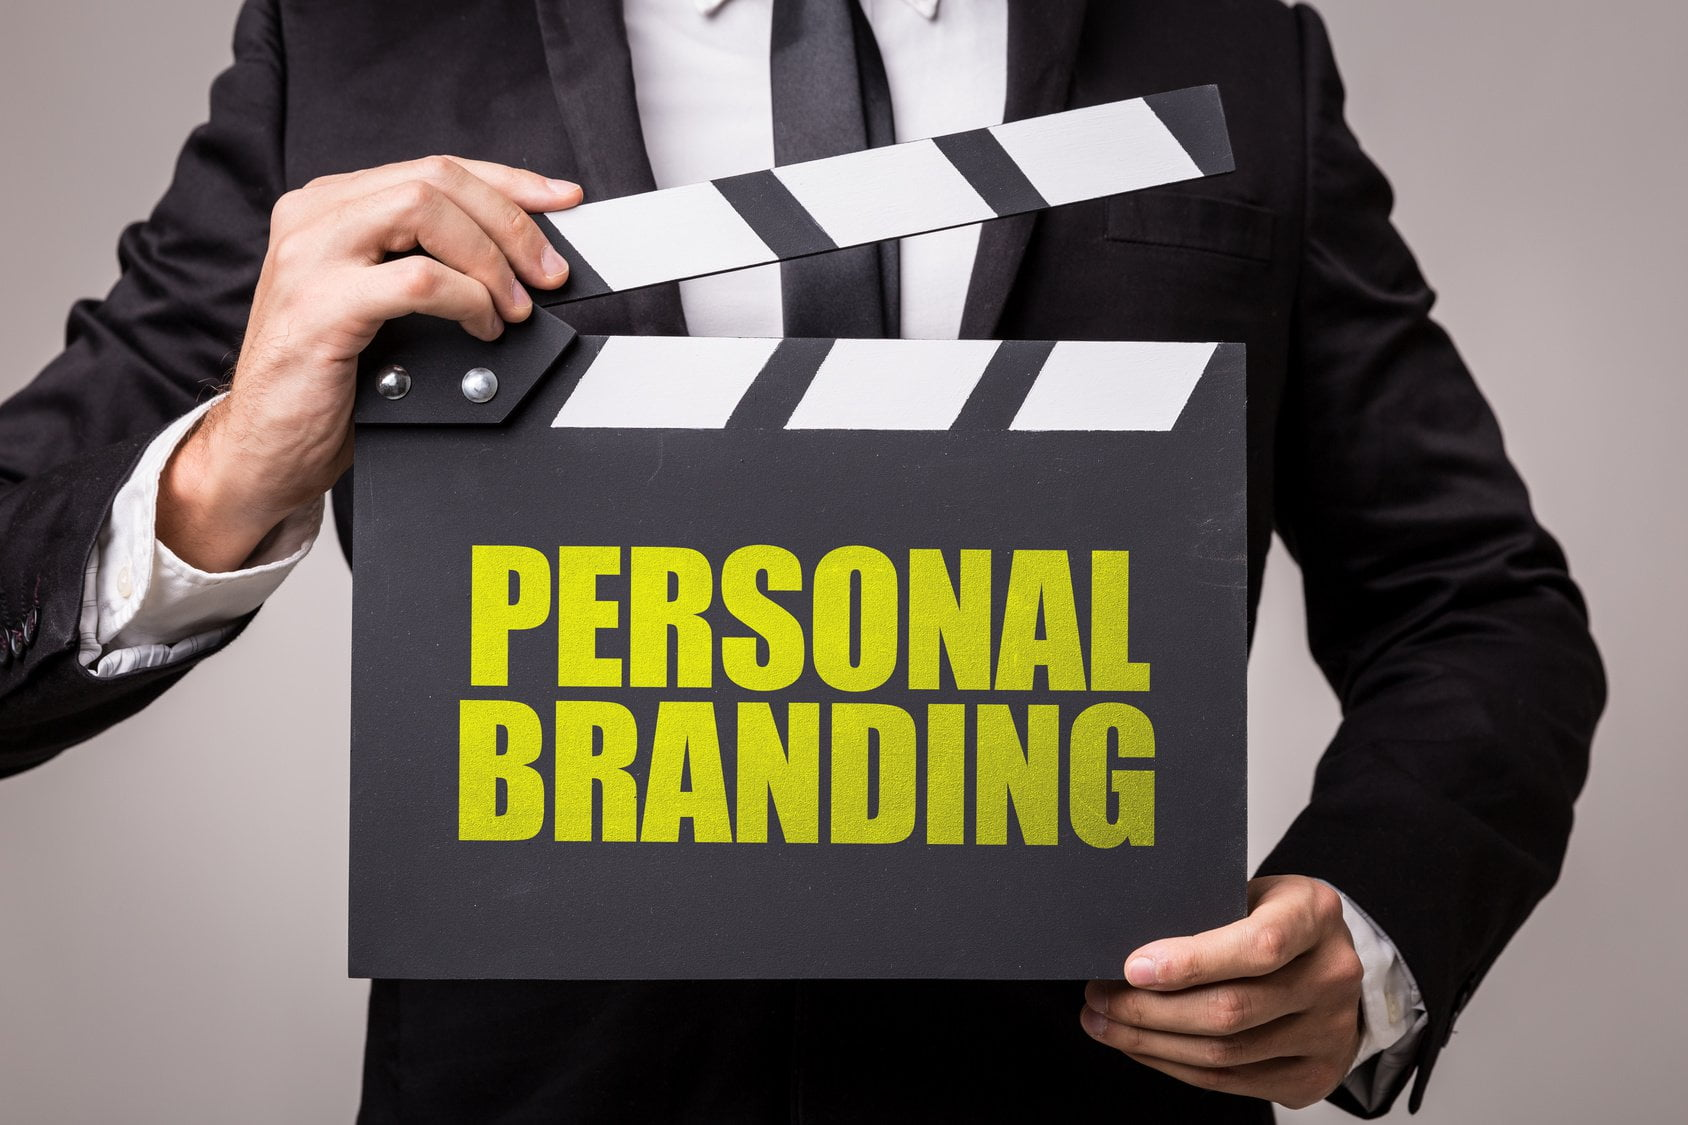 5 Personal Branding Hacks Every Entrepreneur Should Know